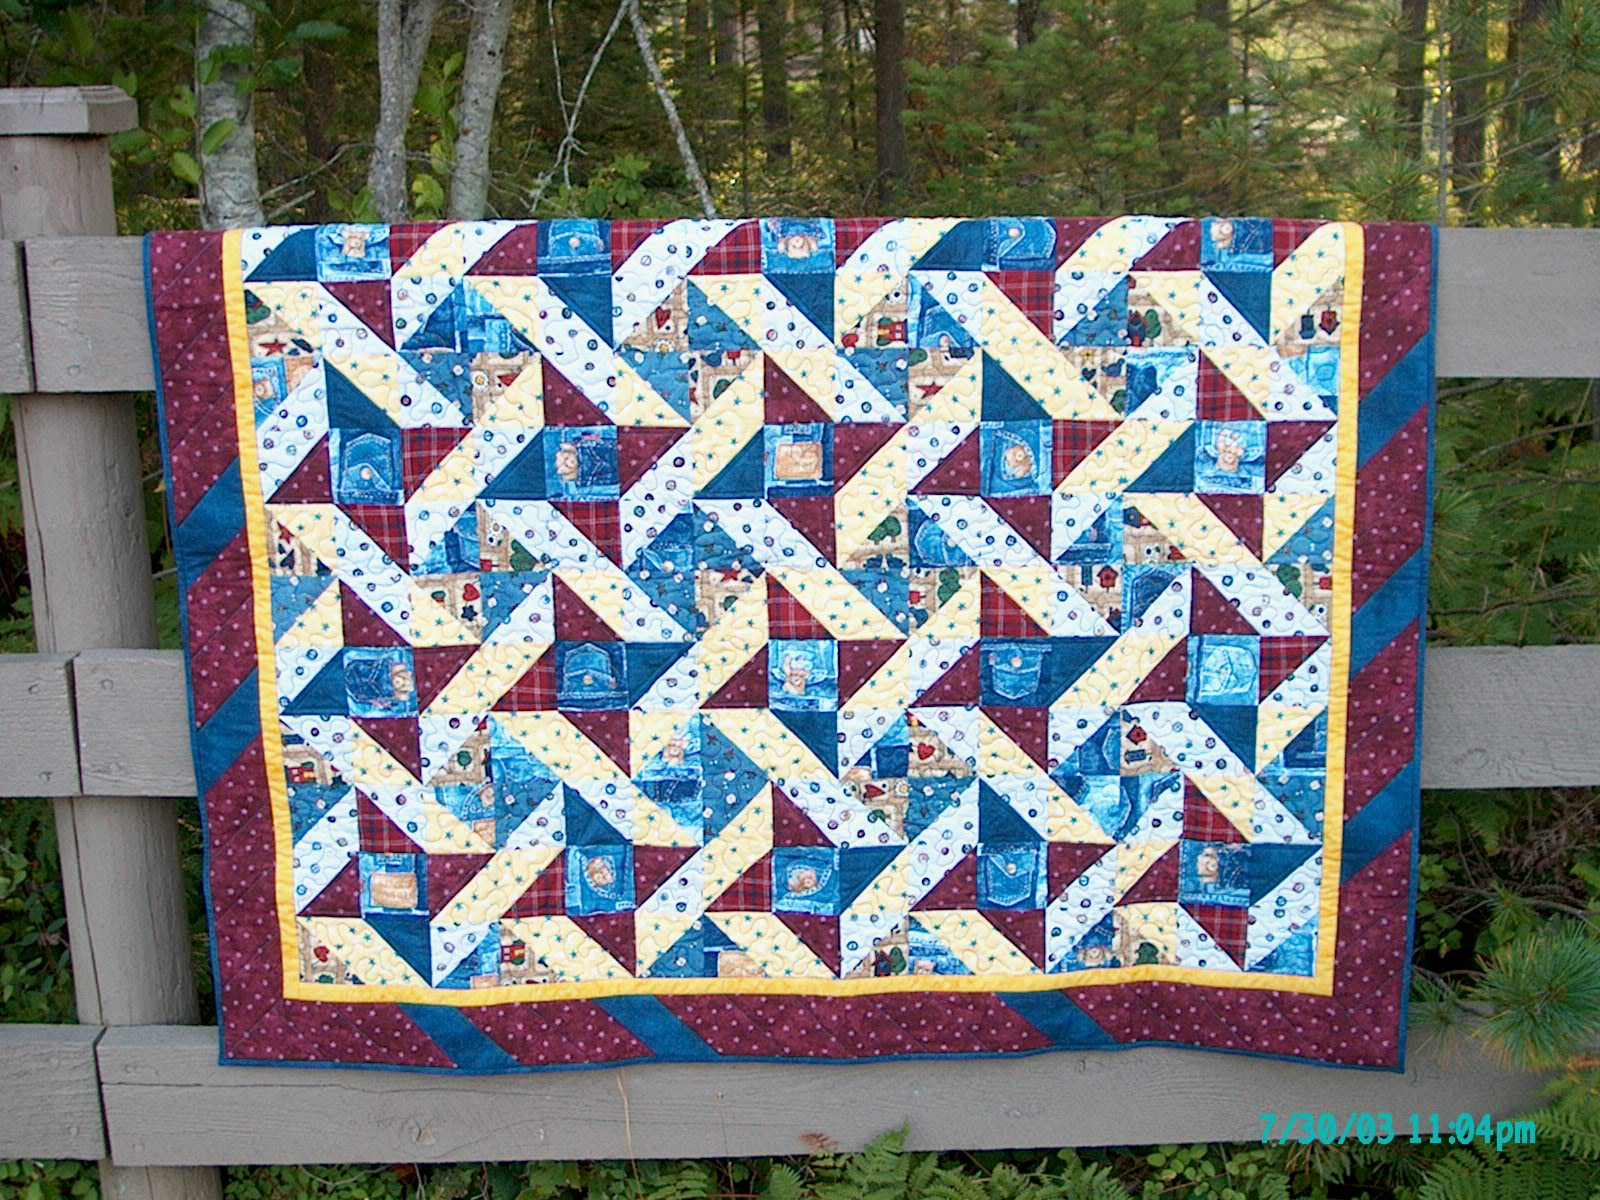 Elsie Quilts A Mystery Quilt In More Ways Than One